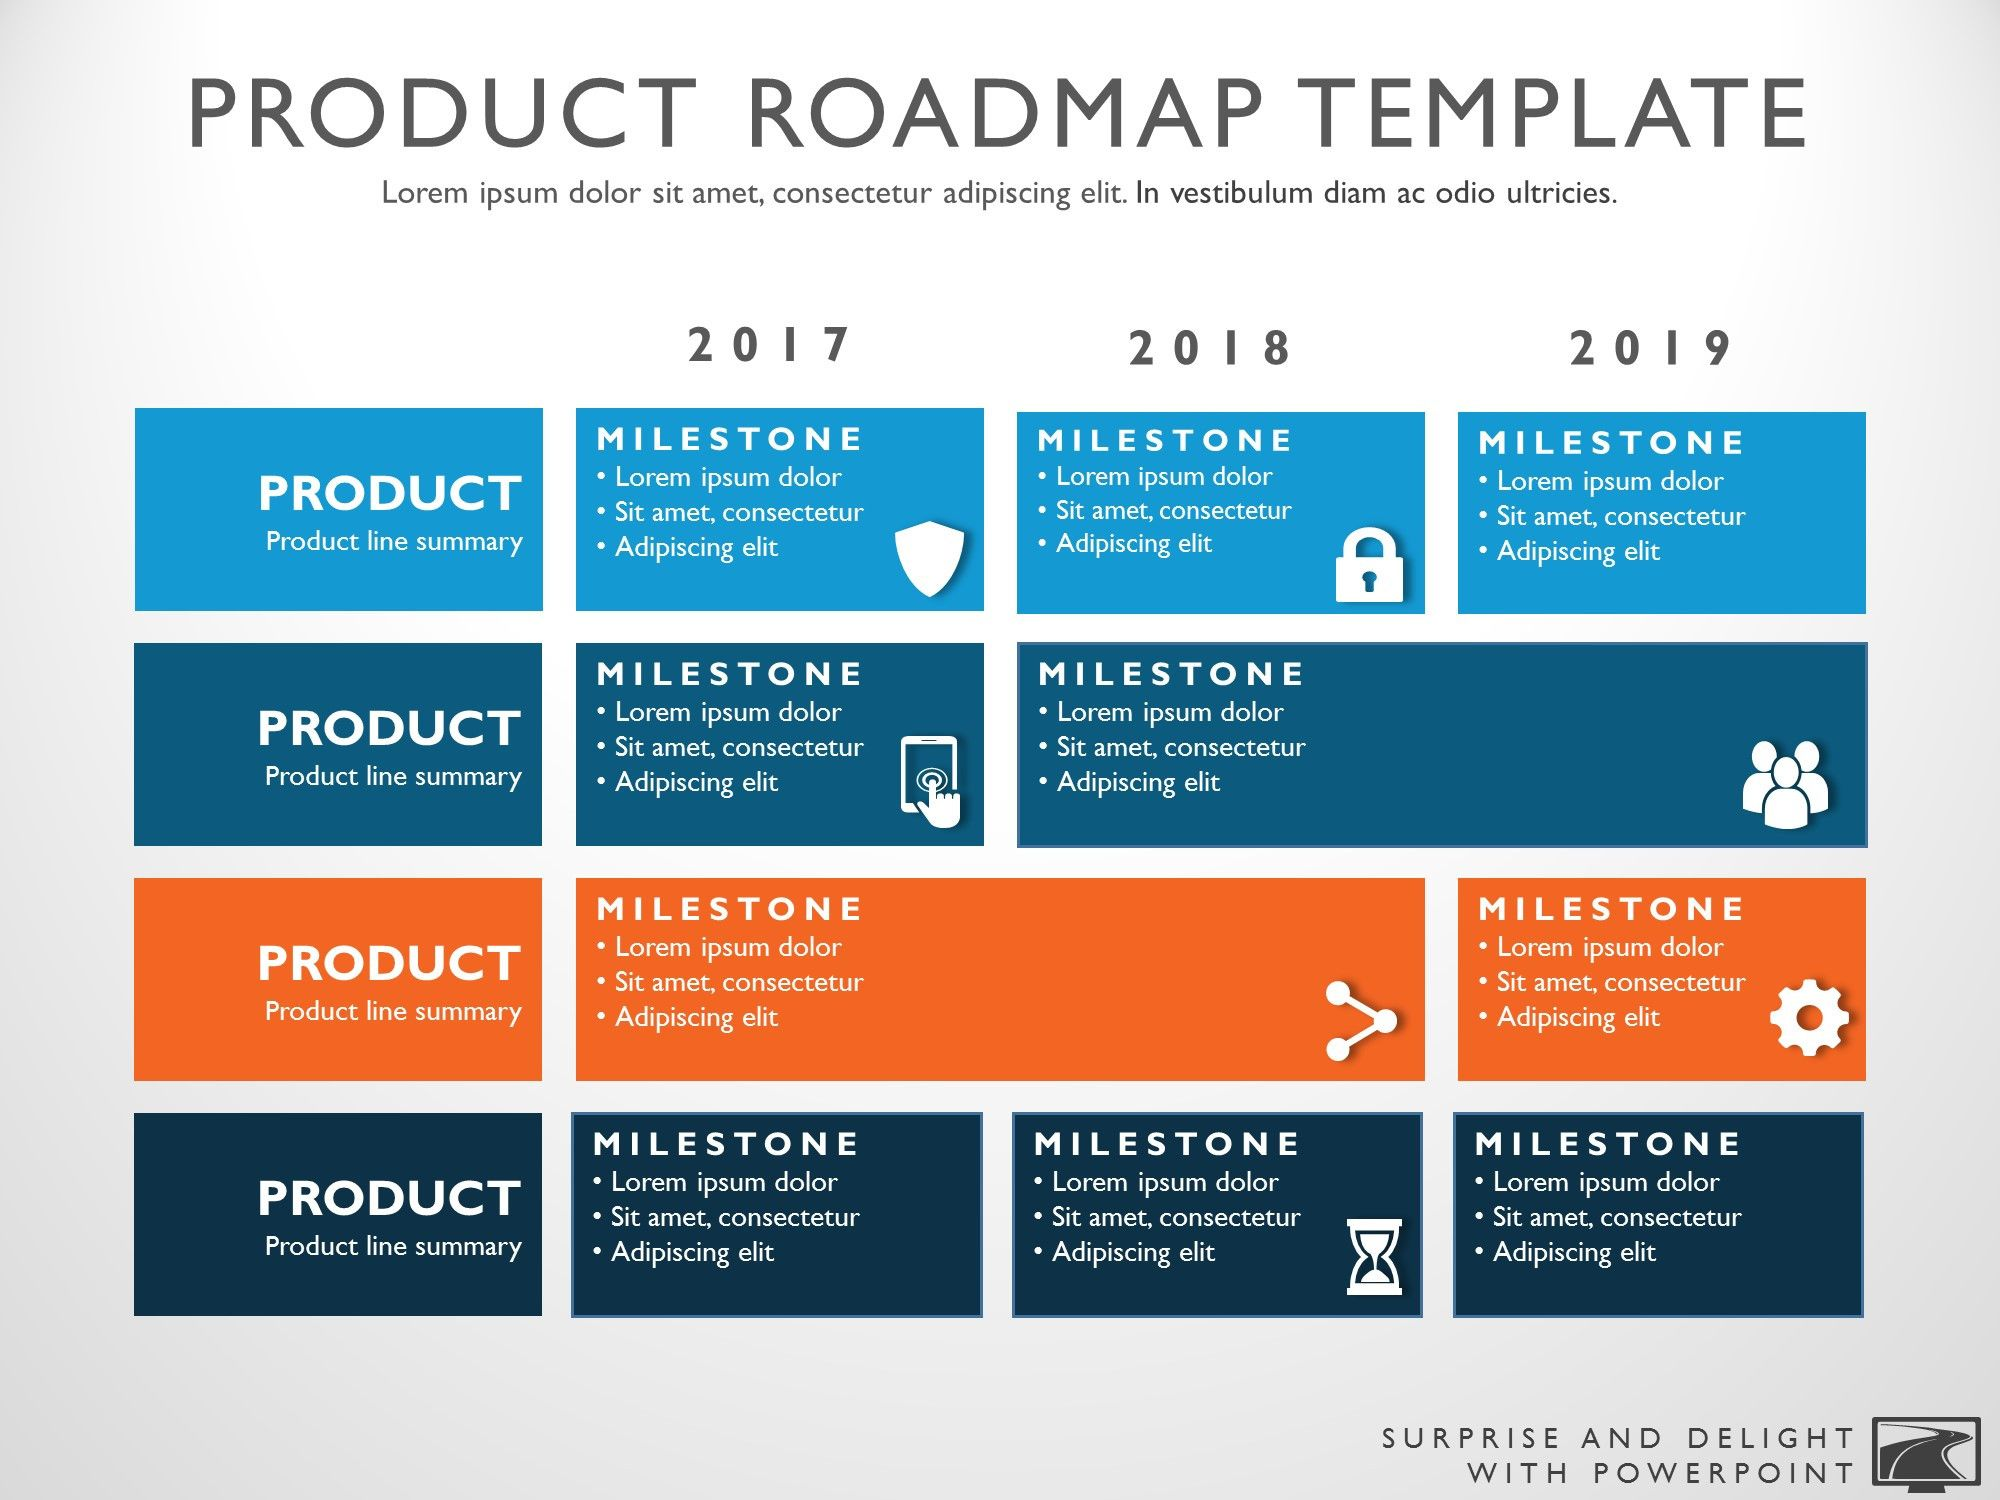 3 year roadmap template pictures good 3 product roadmap template